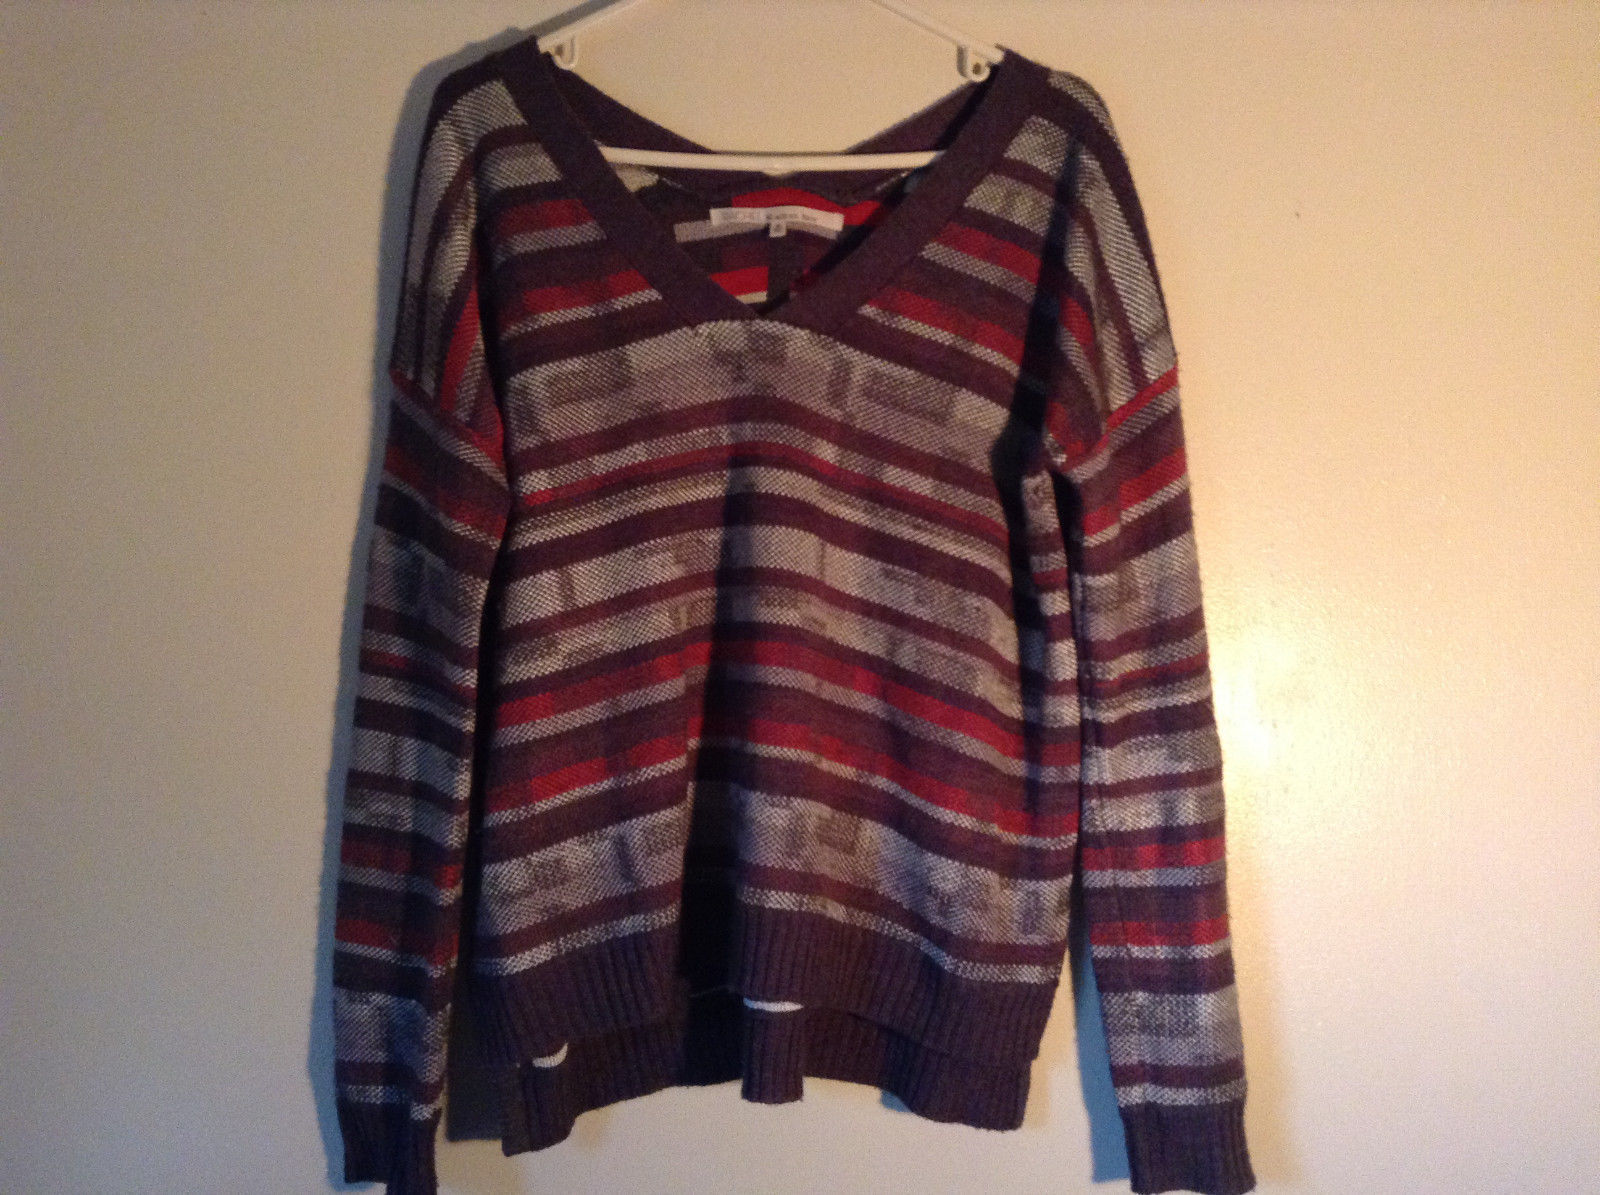 V Neck Gray Sweater by Rachel Roy Striped Red White Long Sleeves Size Medium